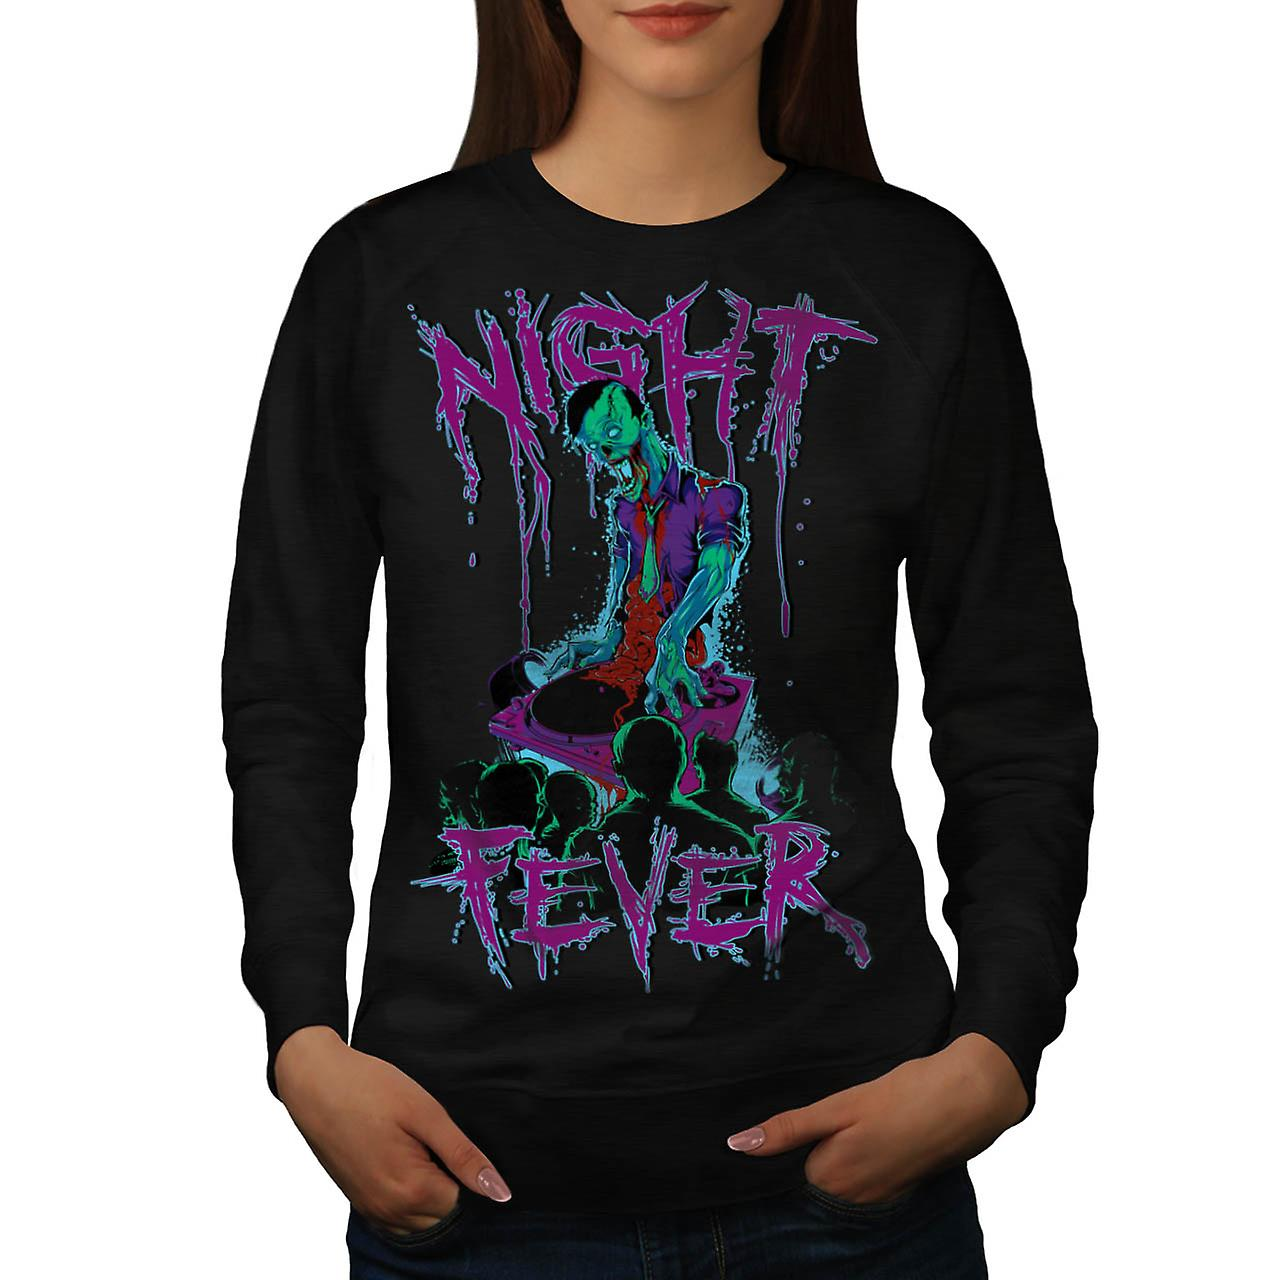 DJ Zombie Night Fever Undead Rip Women Black Sweatshirt | Wellcoda